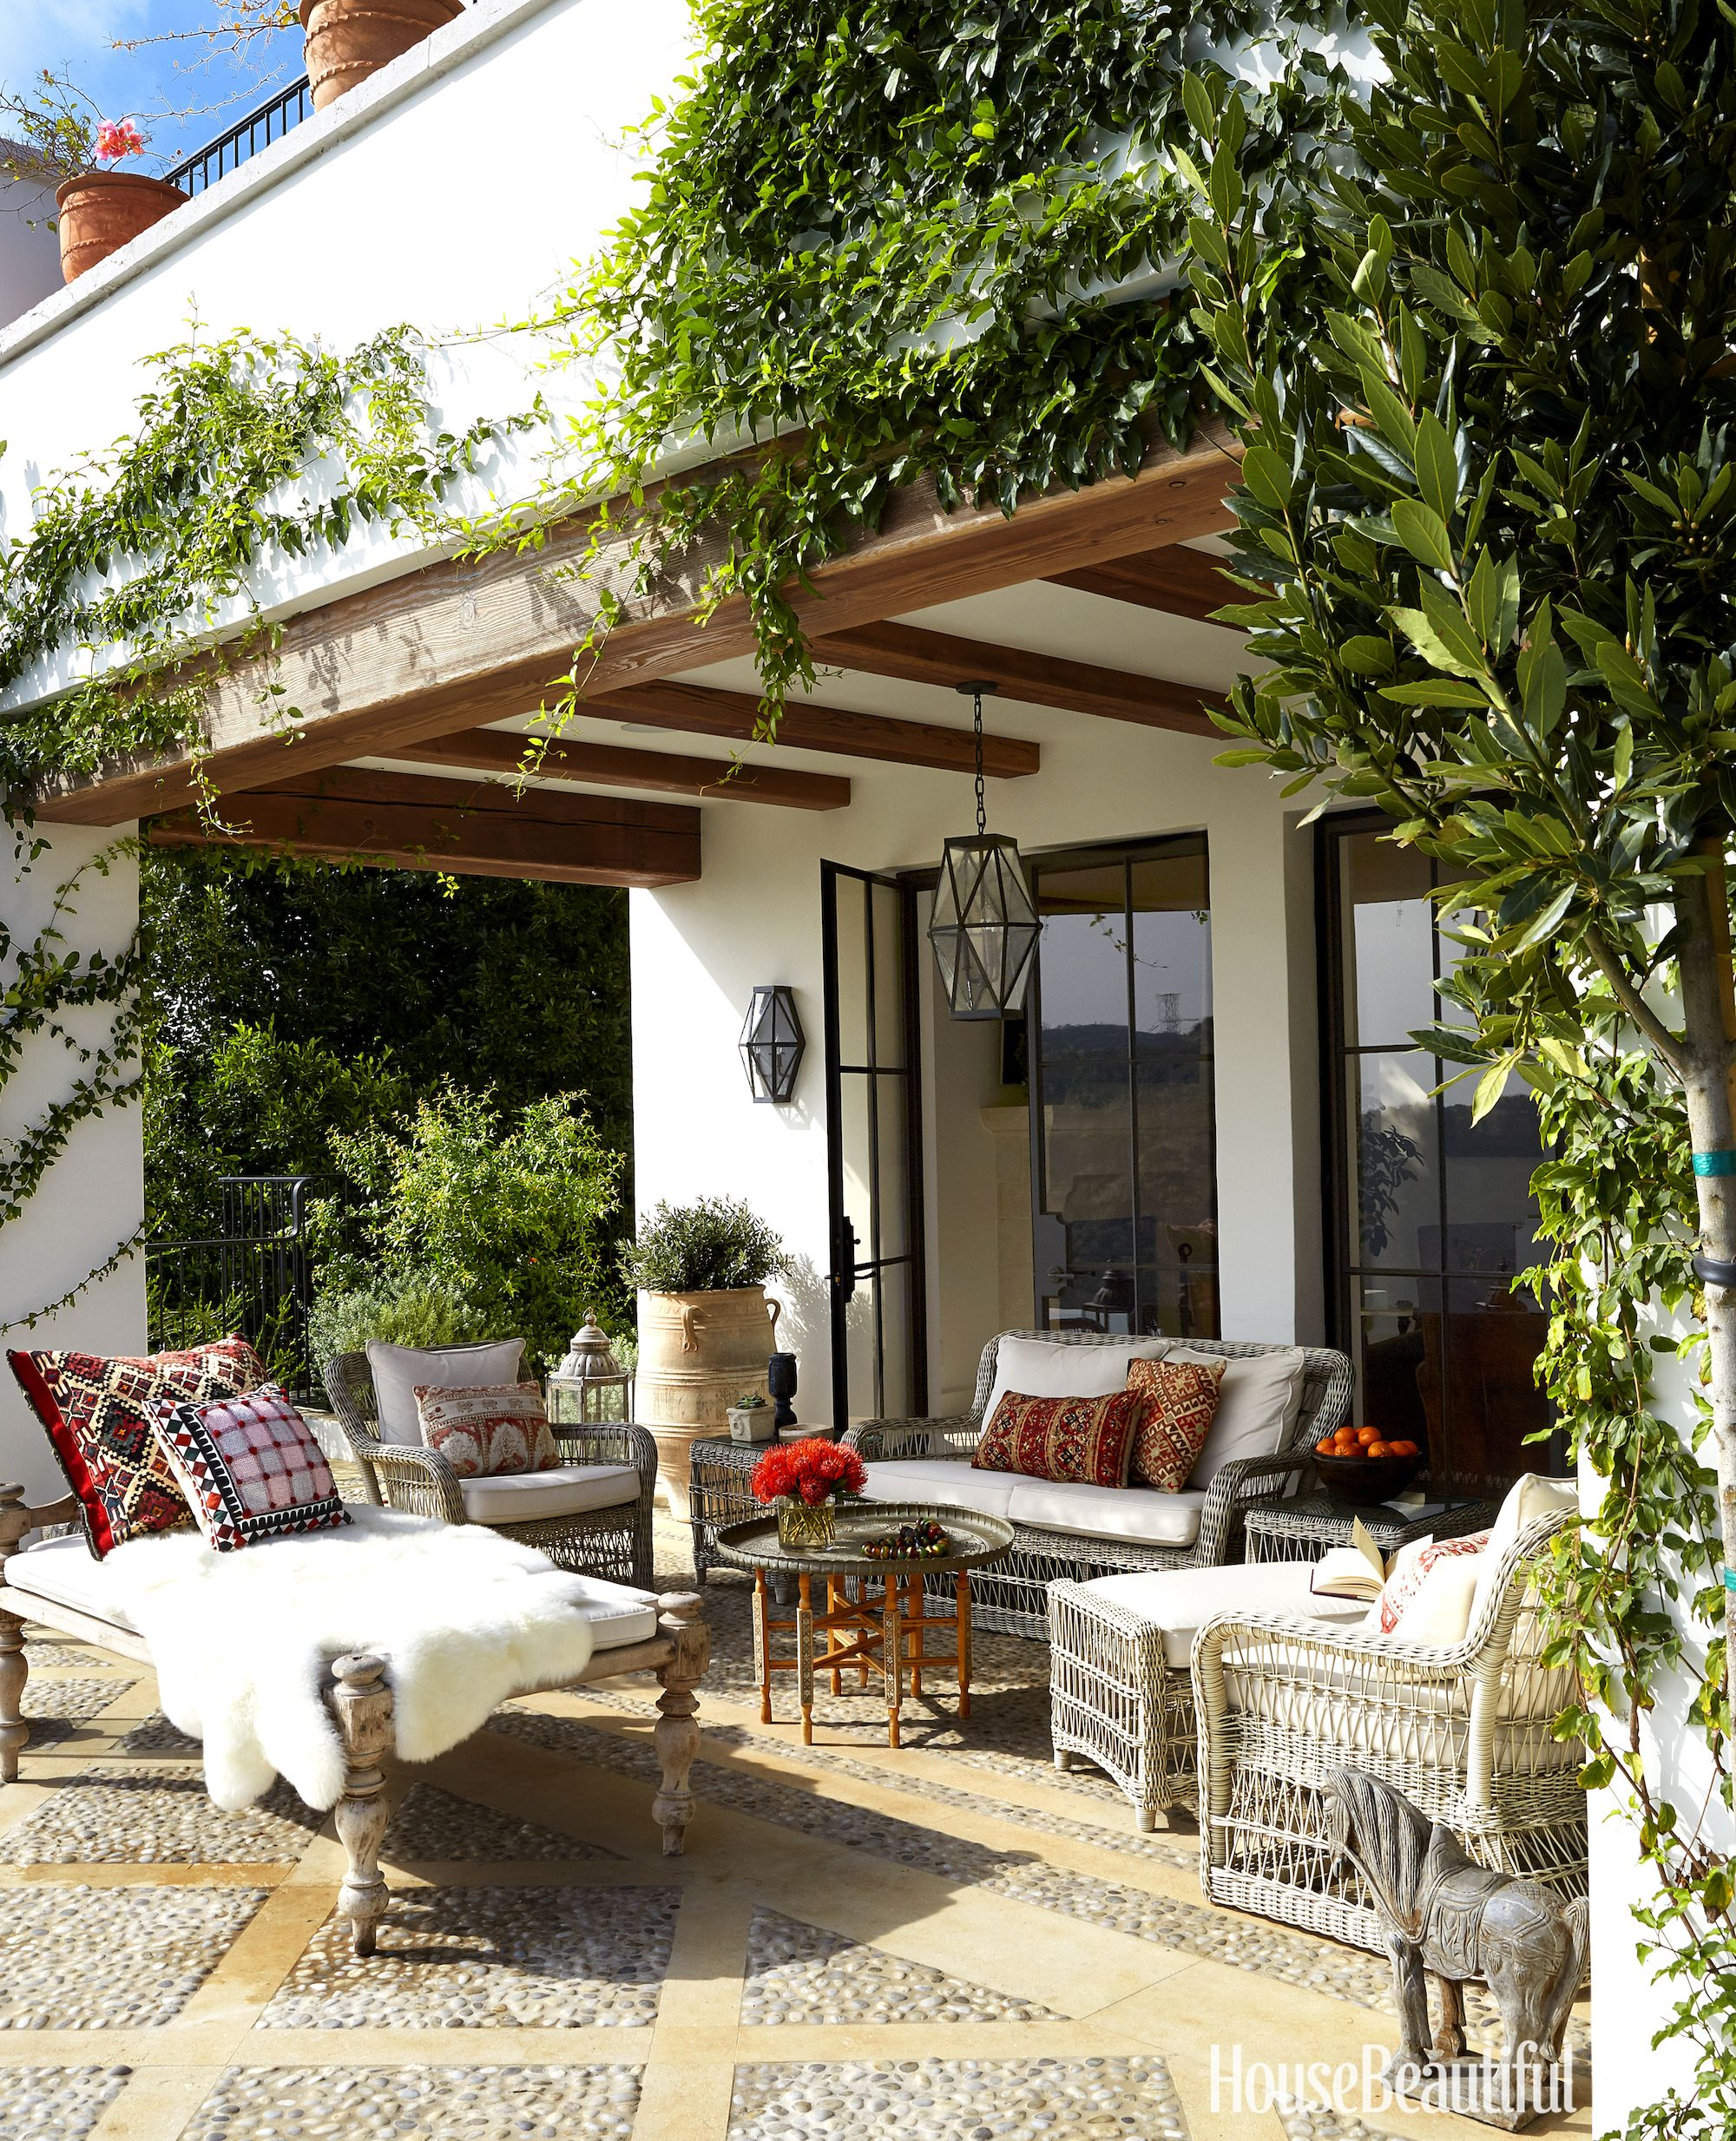 Outdoor Living Spaces Ideas Adorable 85 Patio And Outdoor Room Design Ideas And Photos Inspiration